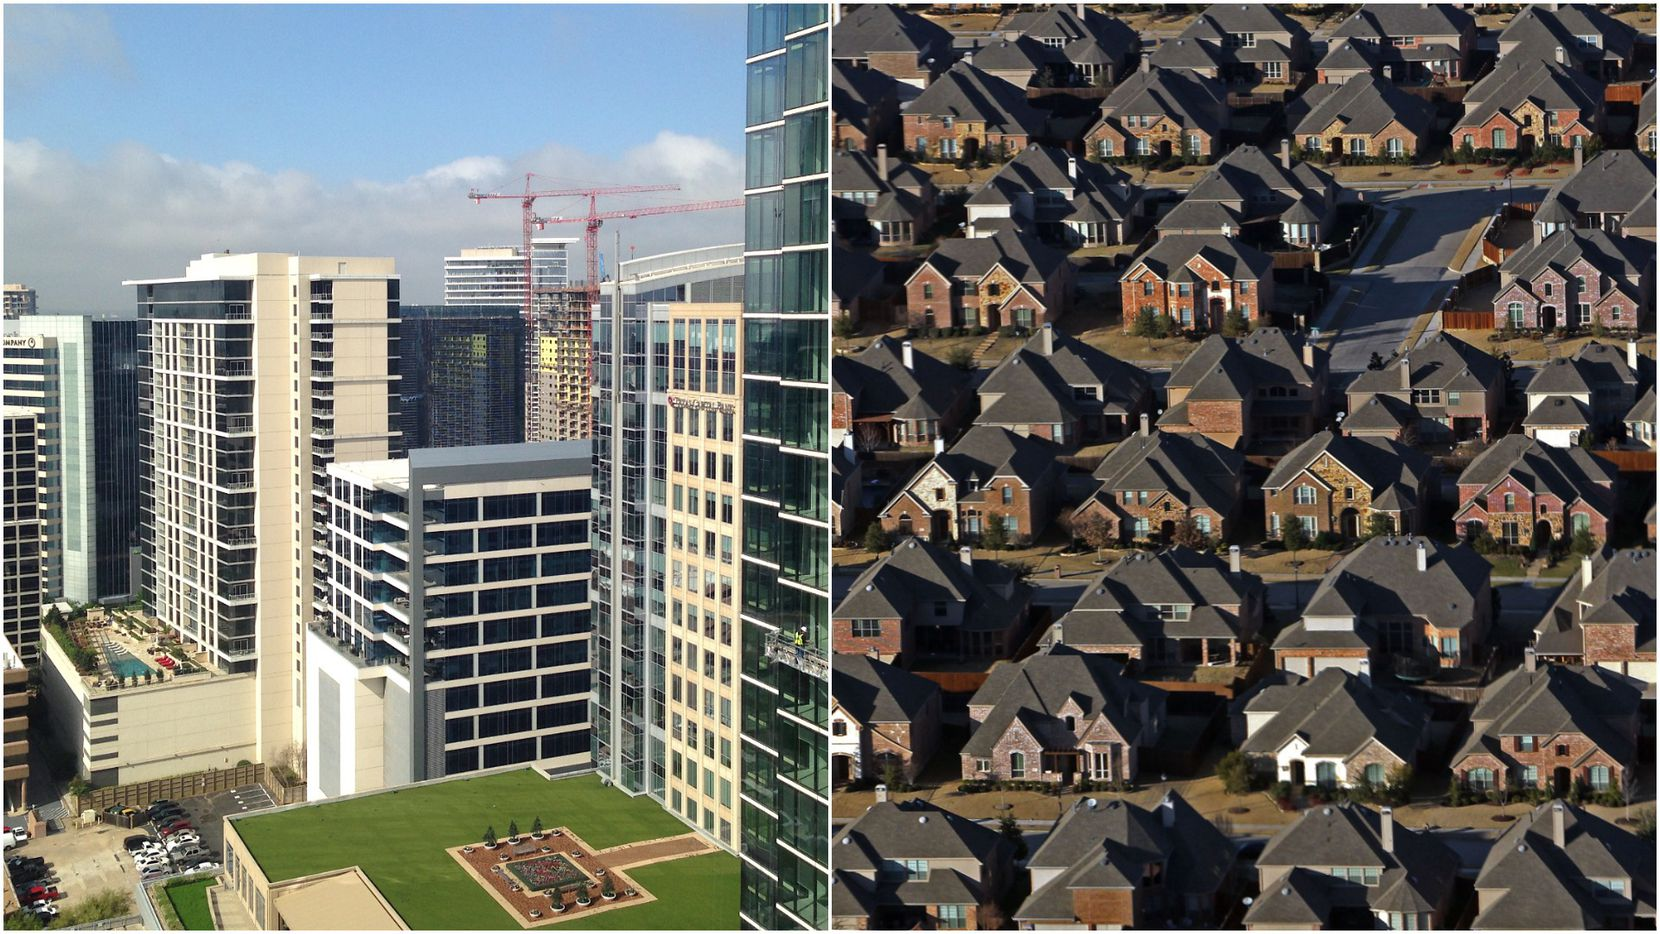 The urban Uptown Dallas vs. suburban Frisco landscapes observed side-by-side.